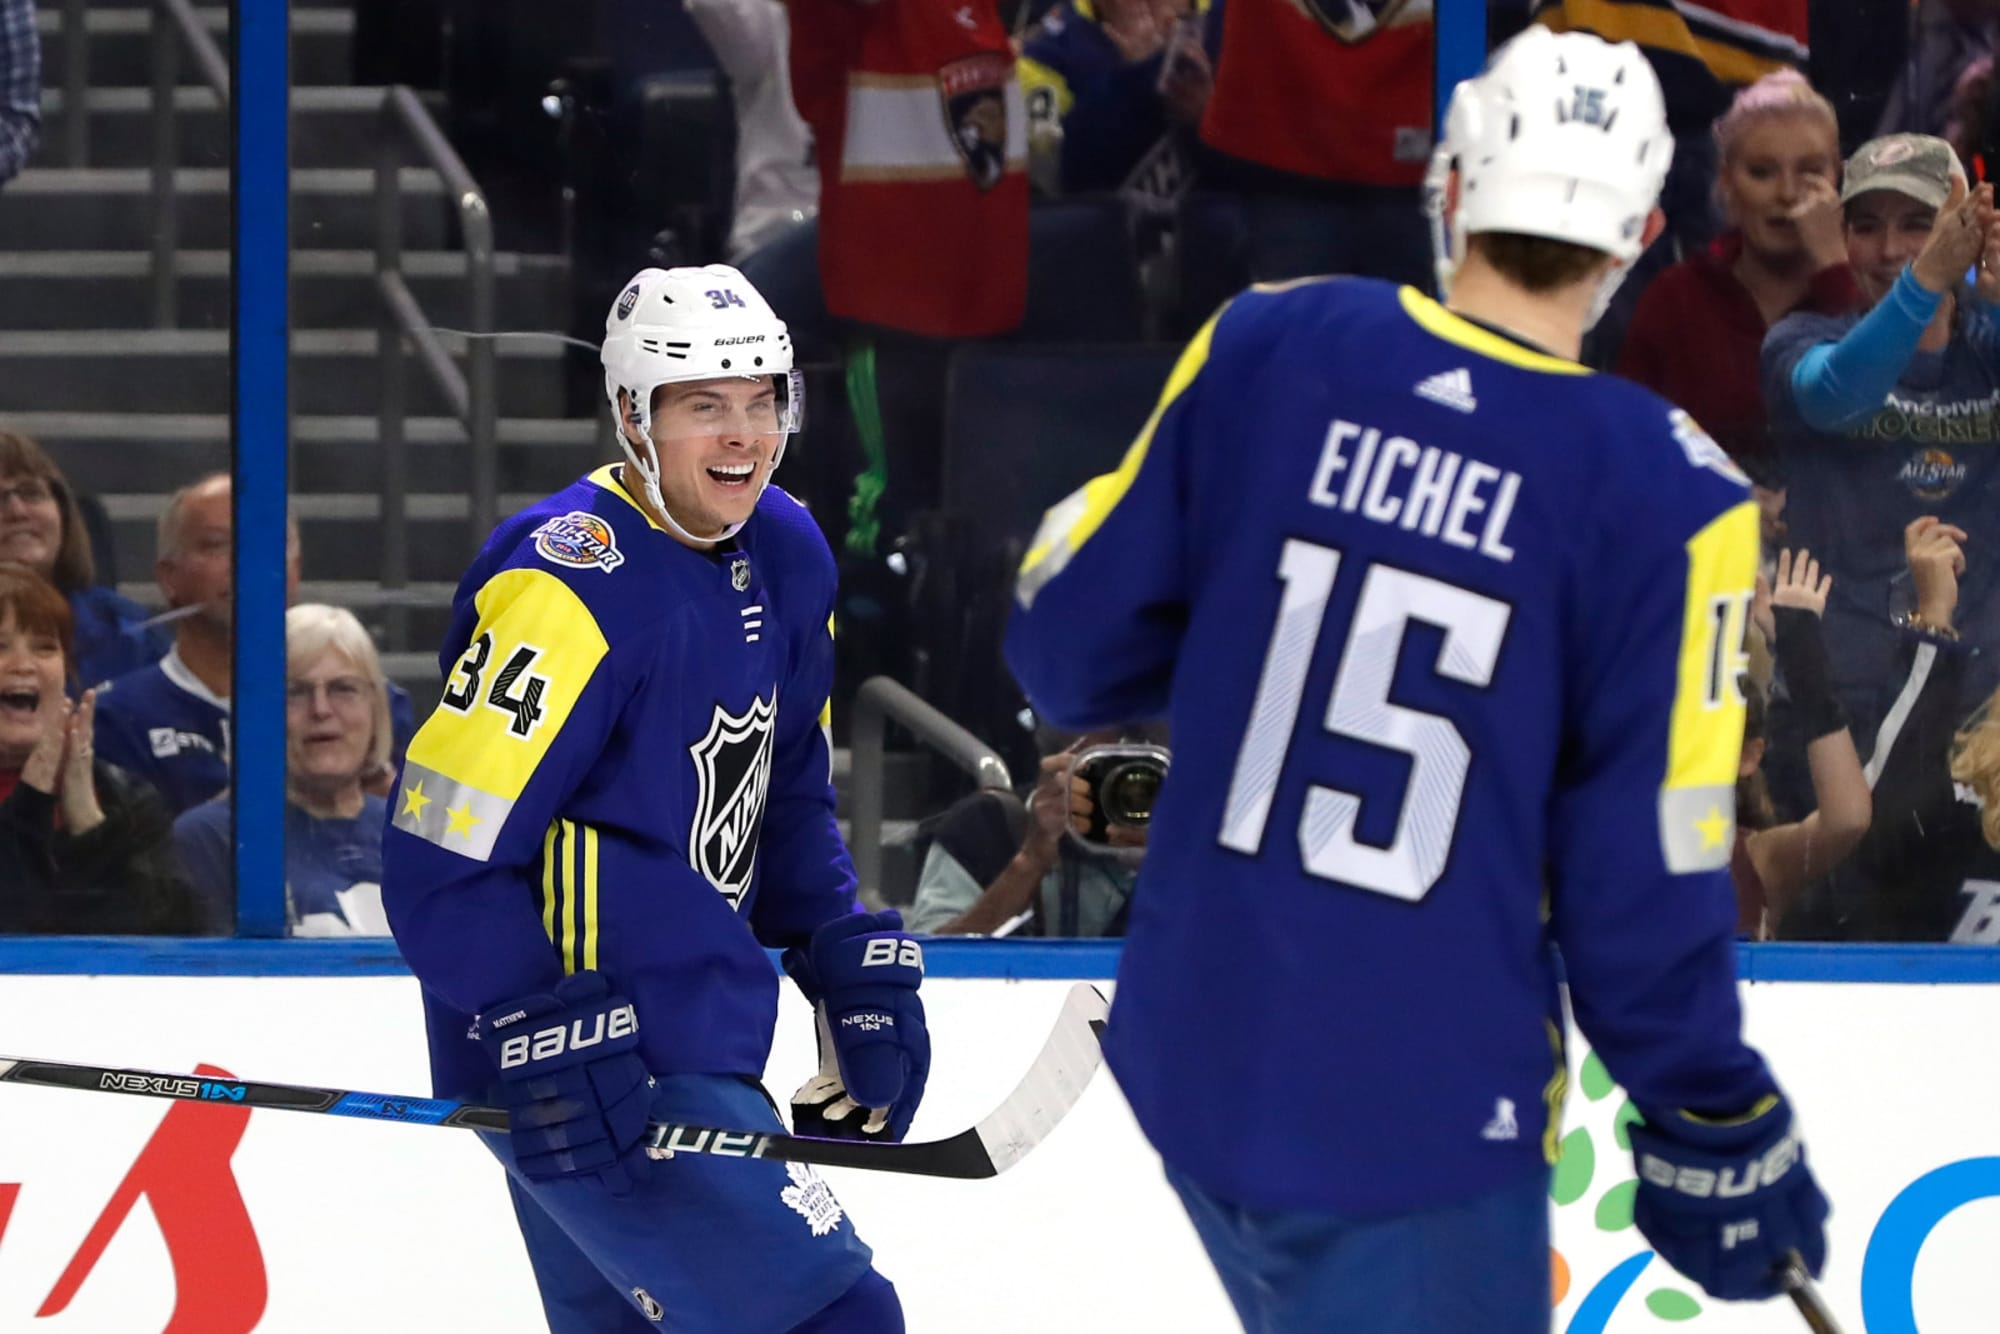 Creating the optimal Team USA with current NHL players